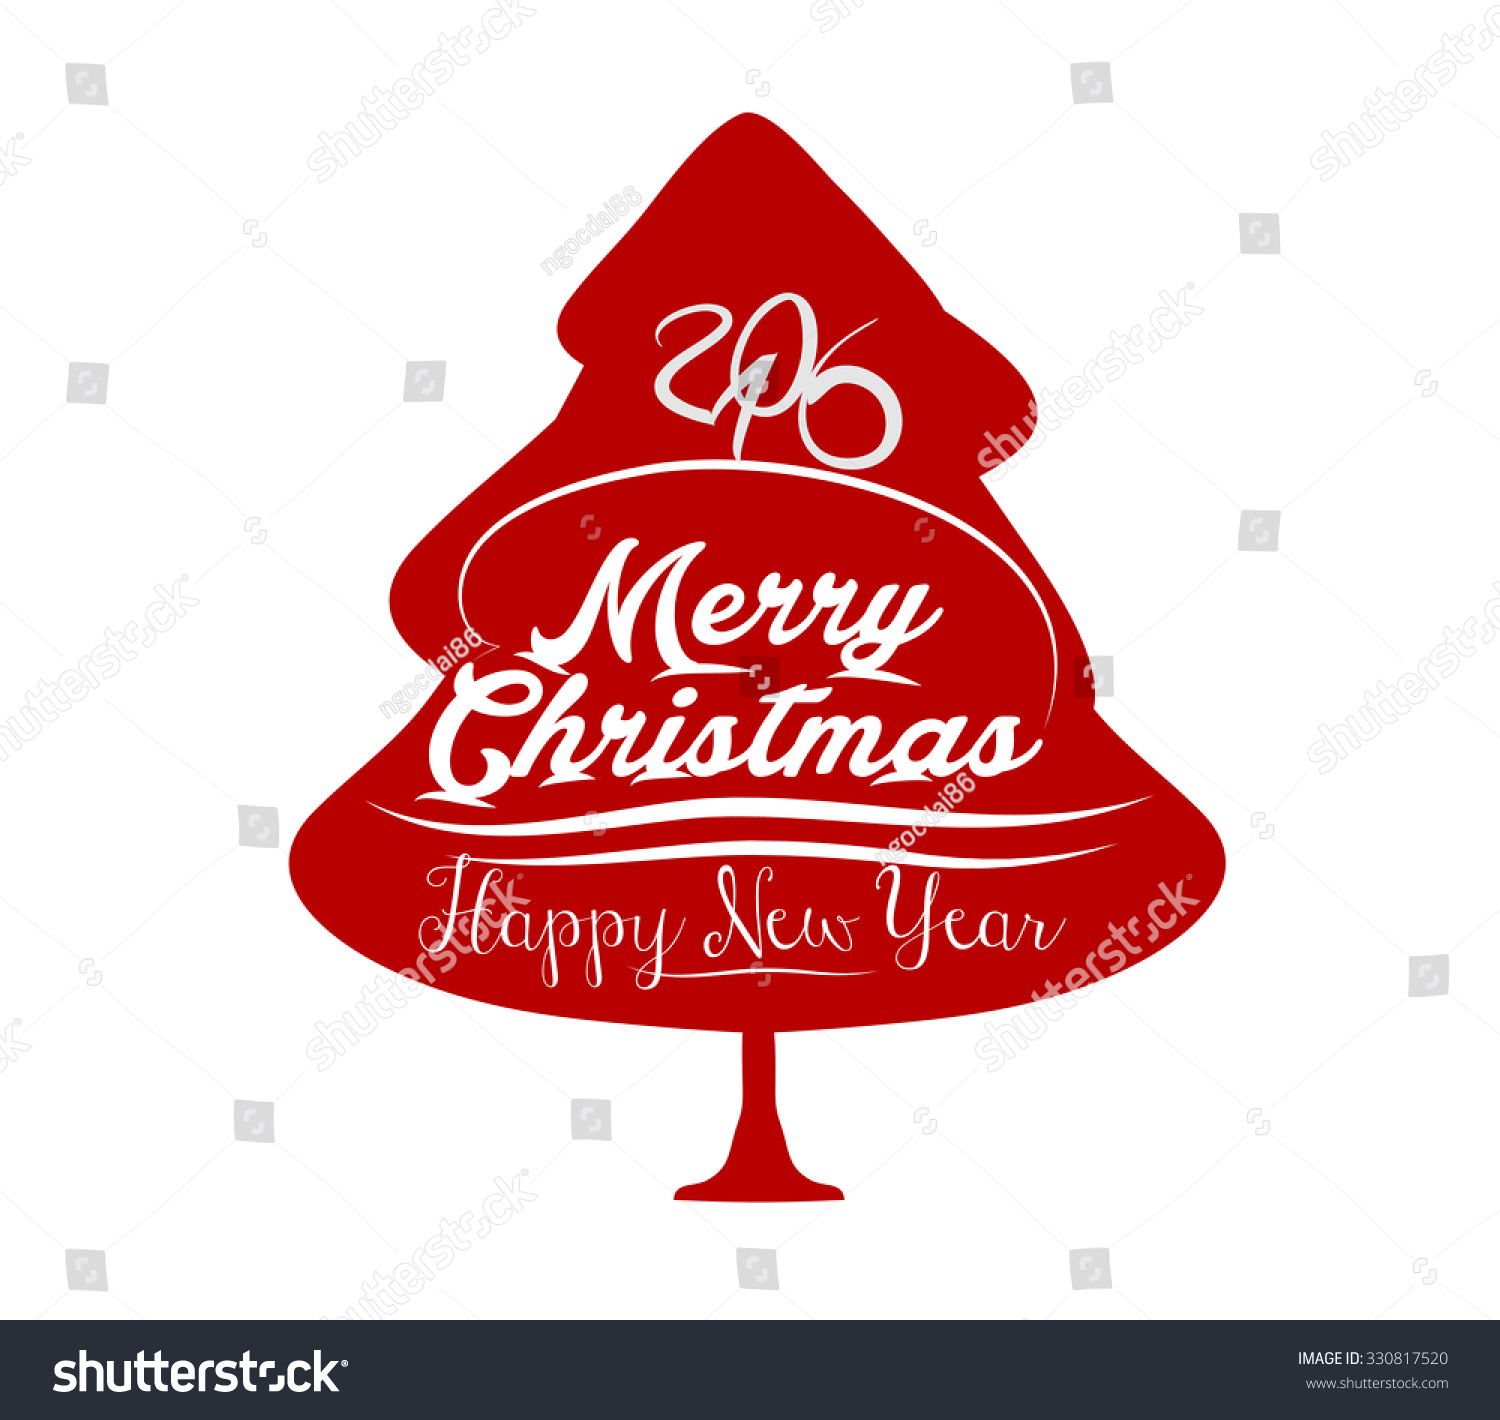 Happy New Year Merry Christmas Tree Stock Vector Royalty Free